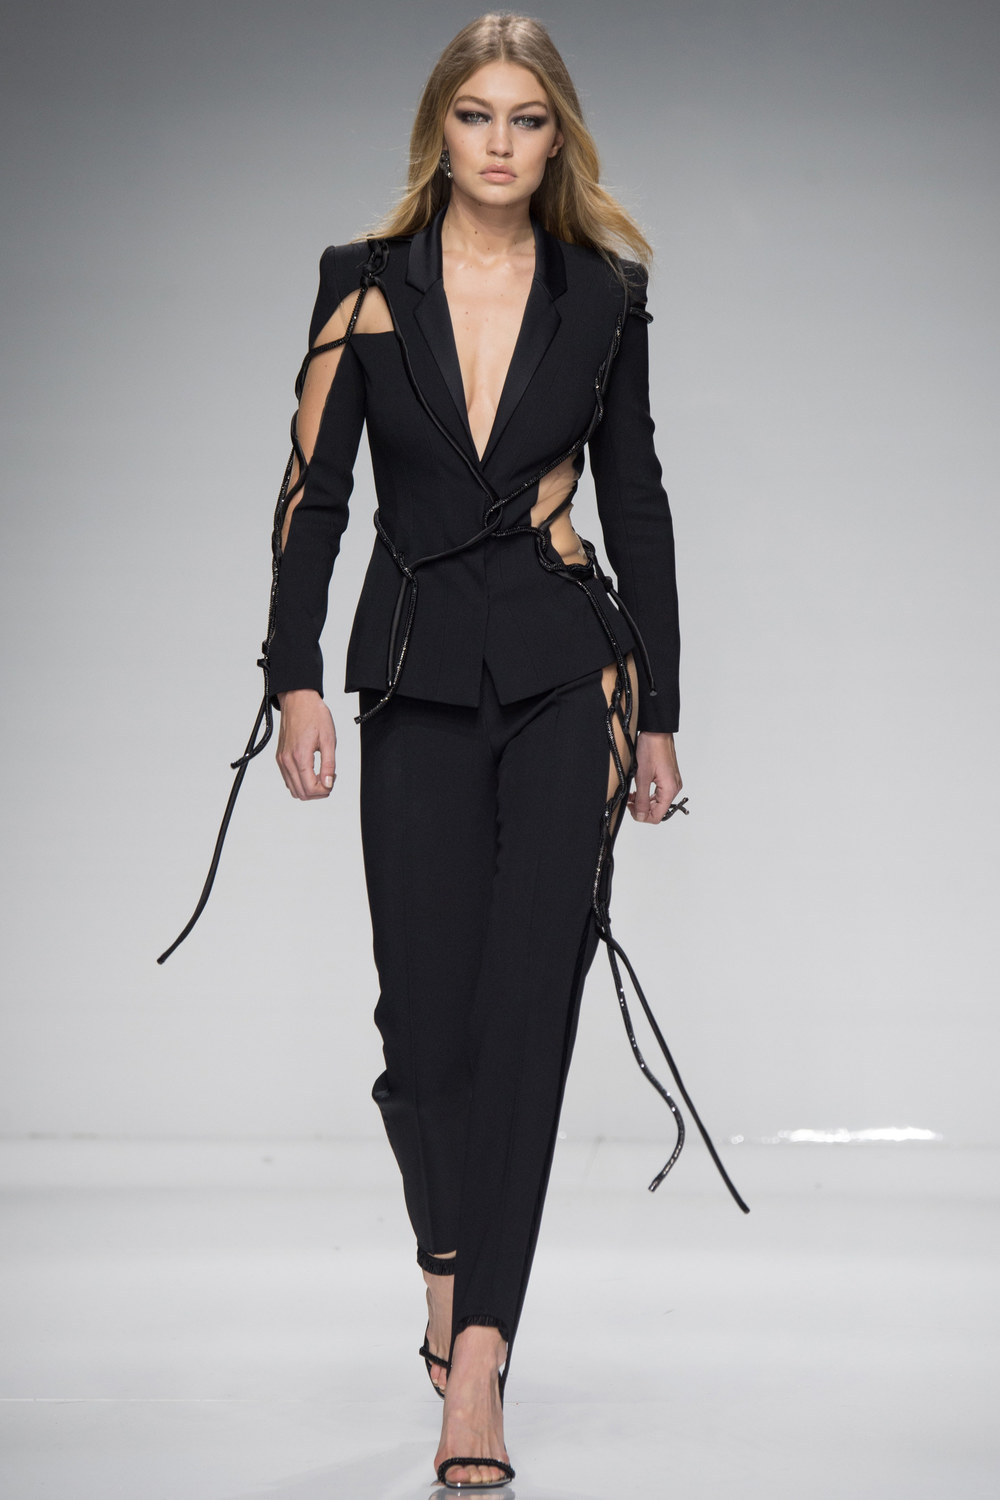 Atelier-Versace-Courute-Spring-2016-Paris-Fashion-Week-23.jpg